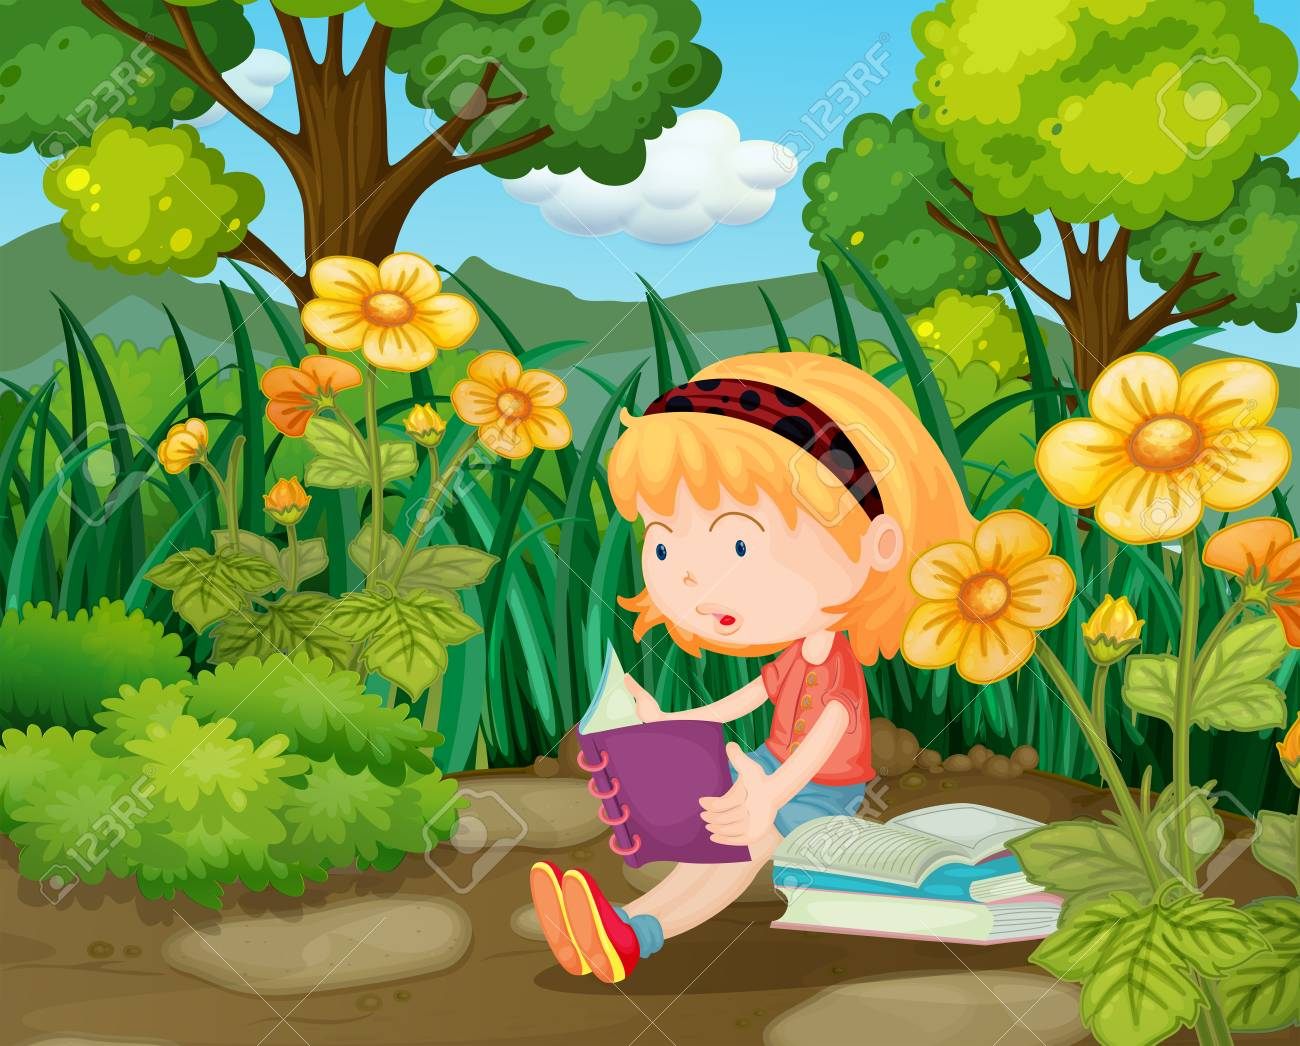 little girl reading books in flower garden illustration royalty free cliparts vectors and stock illustration image 79988595 little girl reading books in flower garden illustration